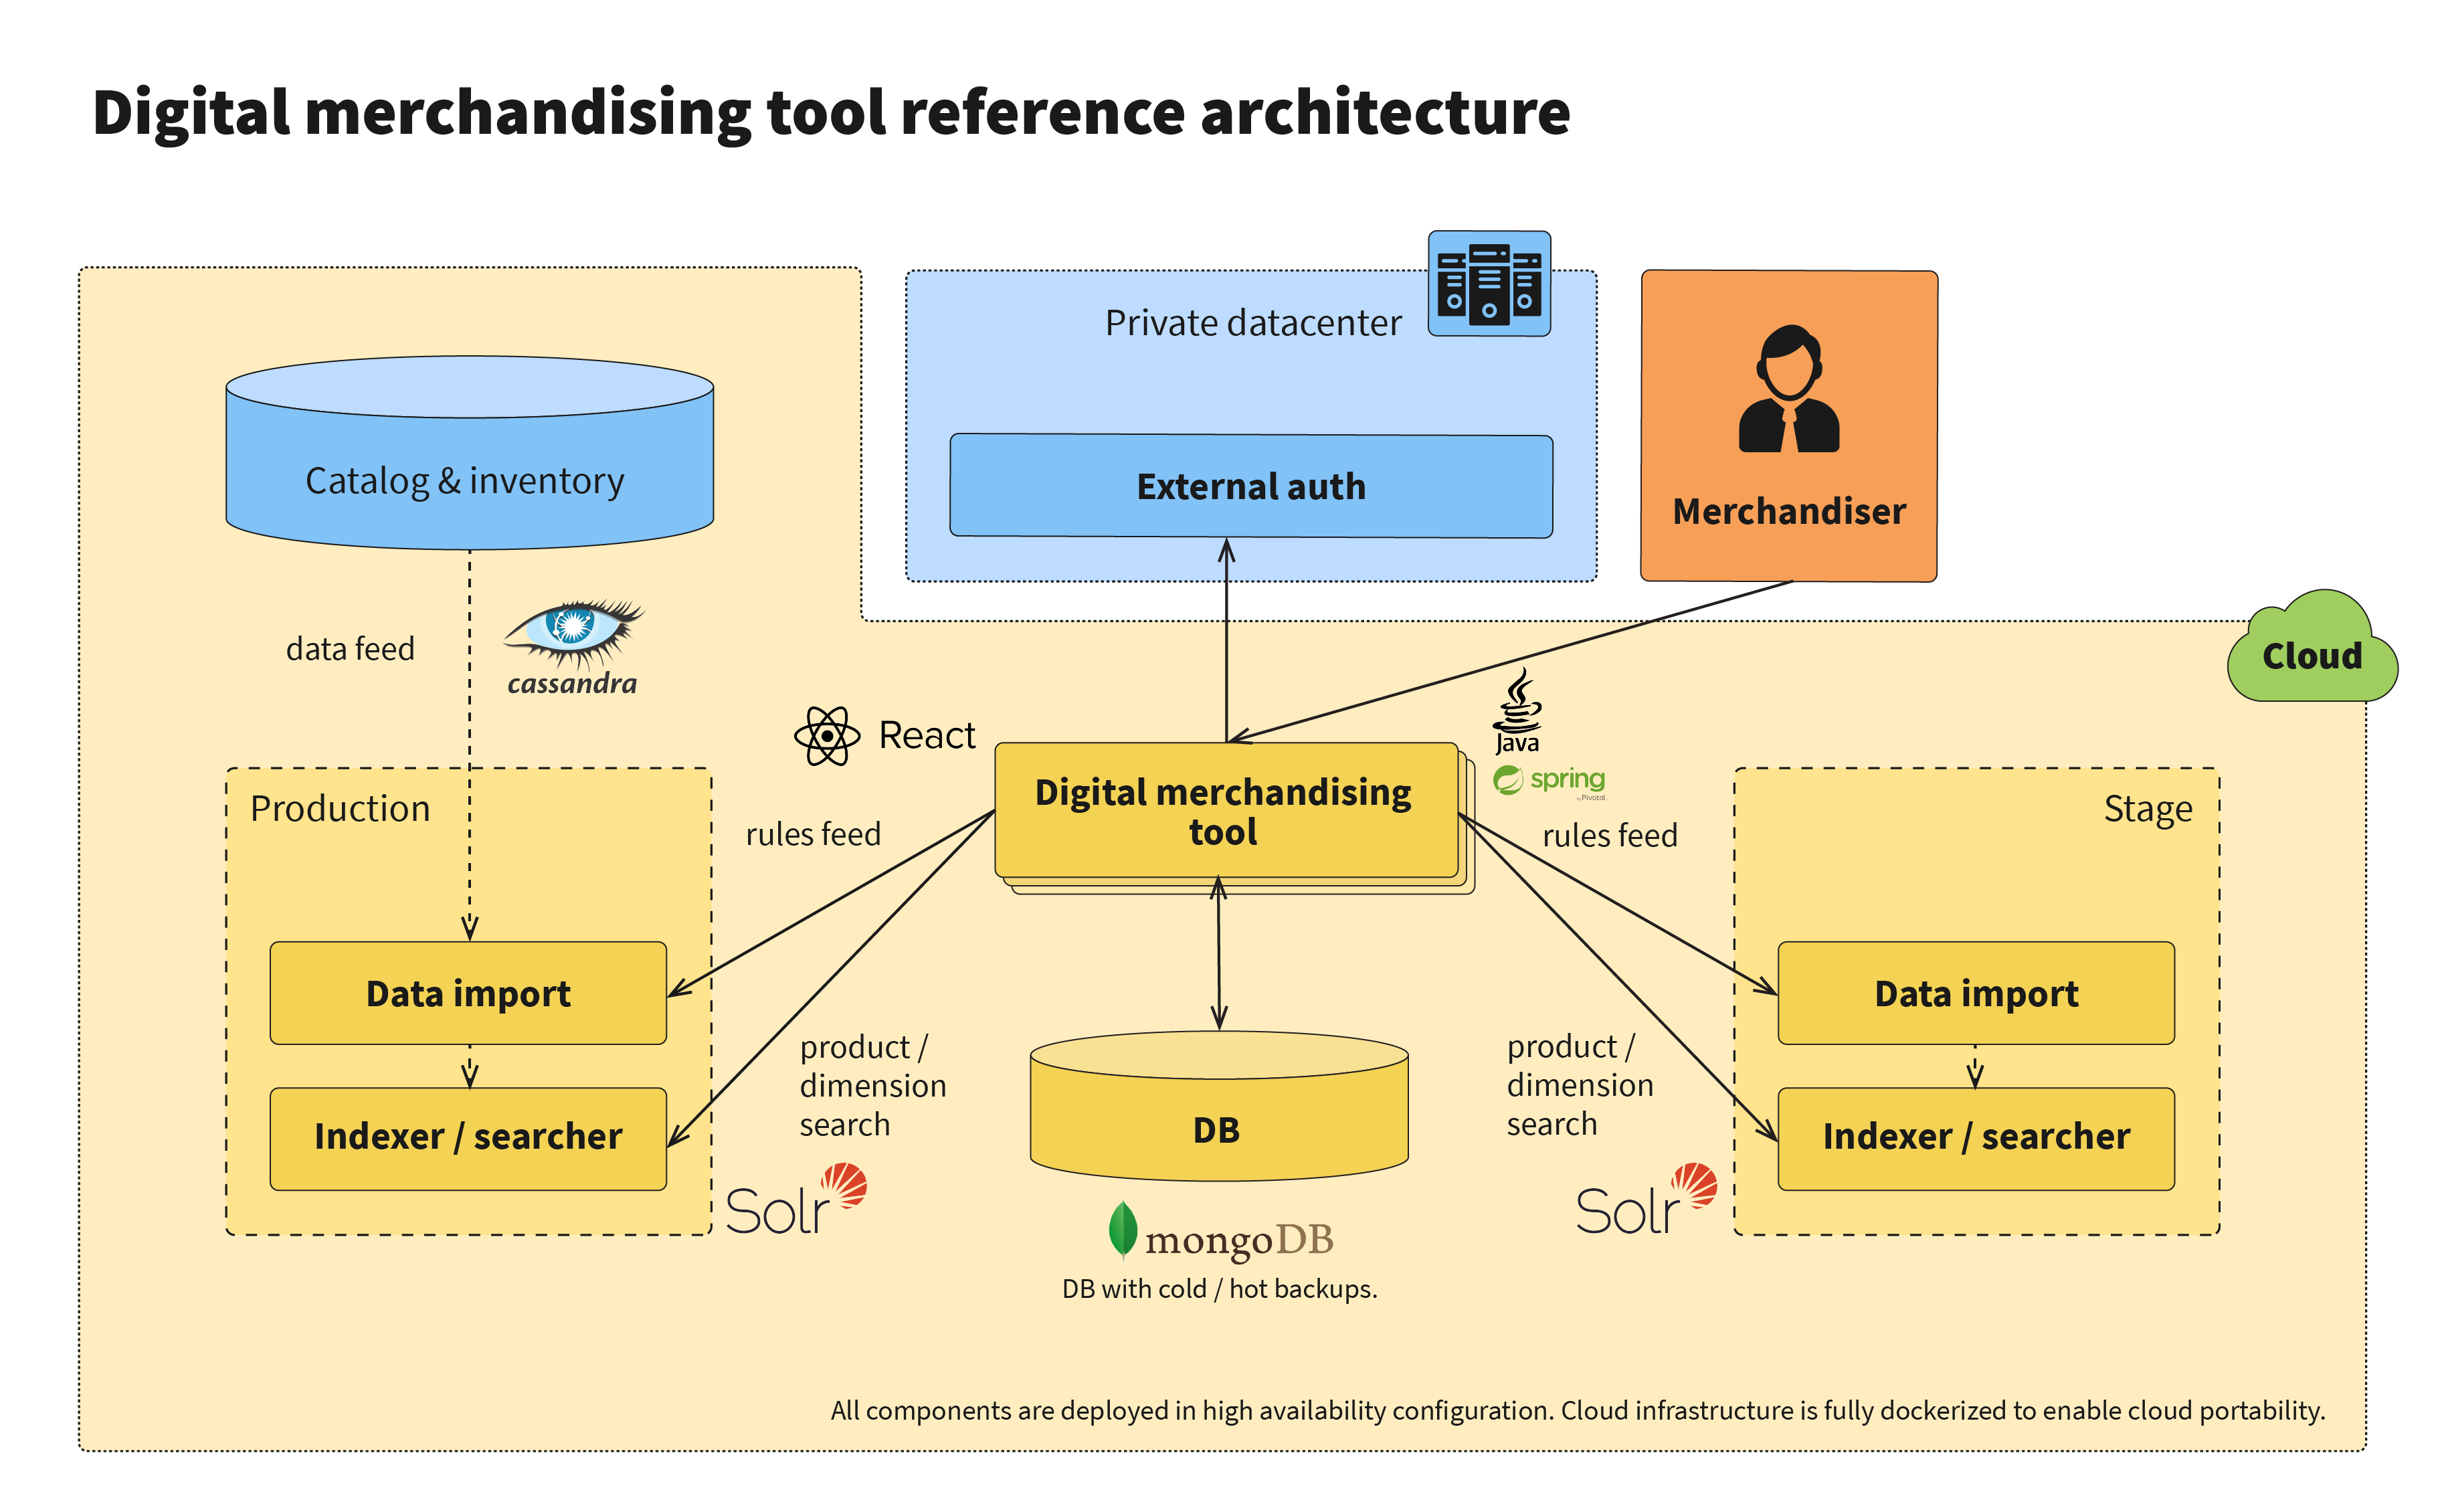 New merchandising tool architecture